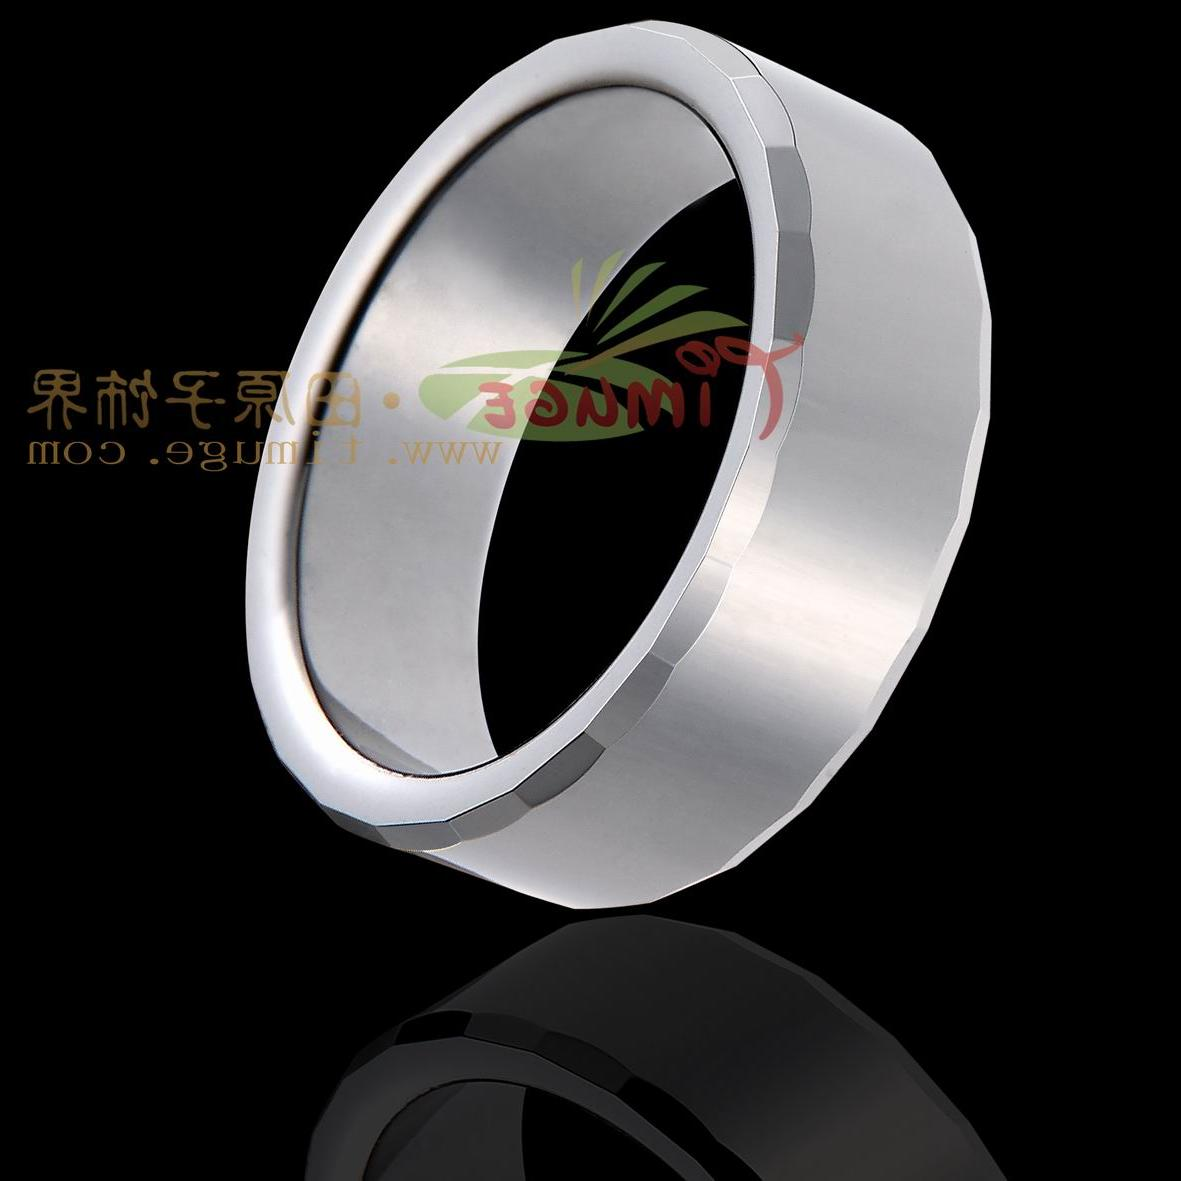 Tungsten Rings, Fashion Jewellery, Wedding Ring We Are Professional